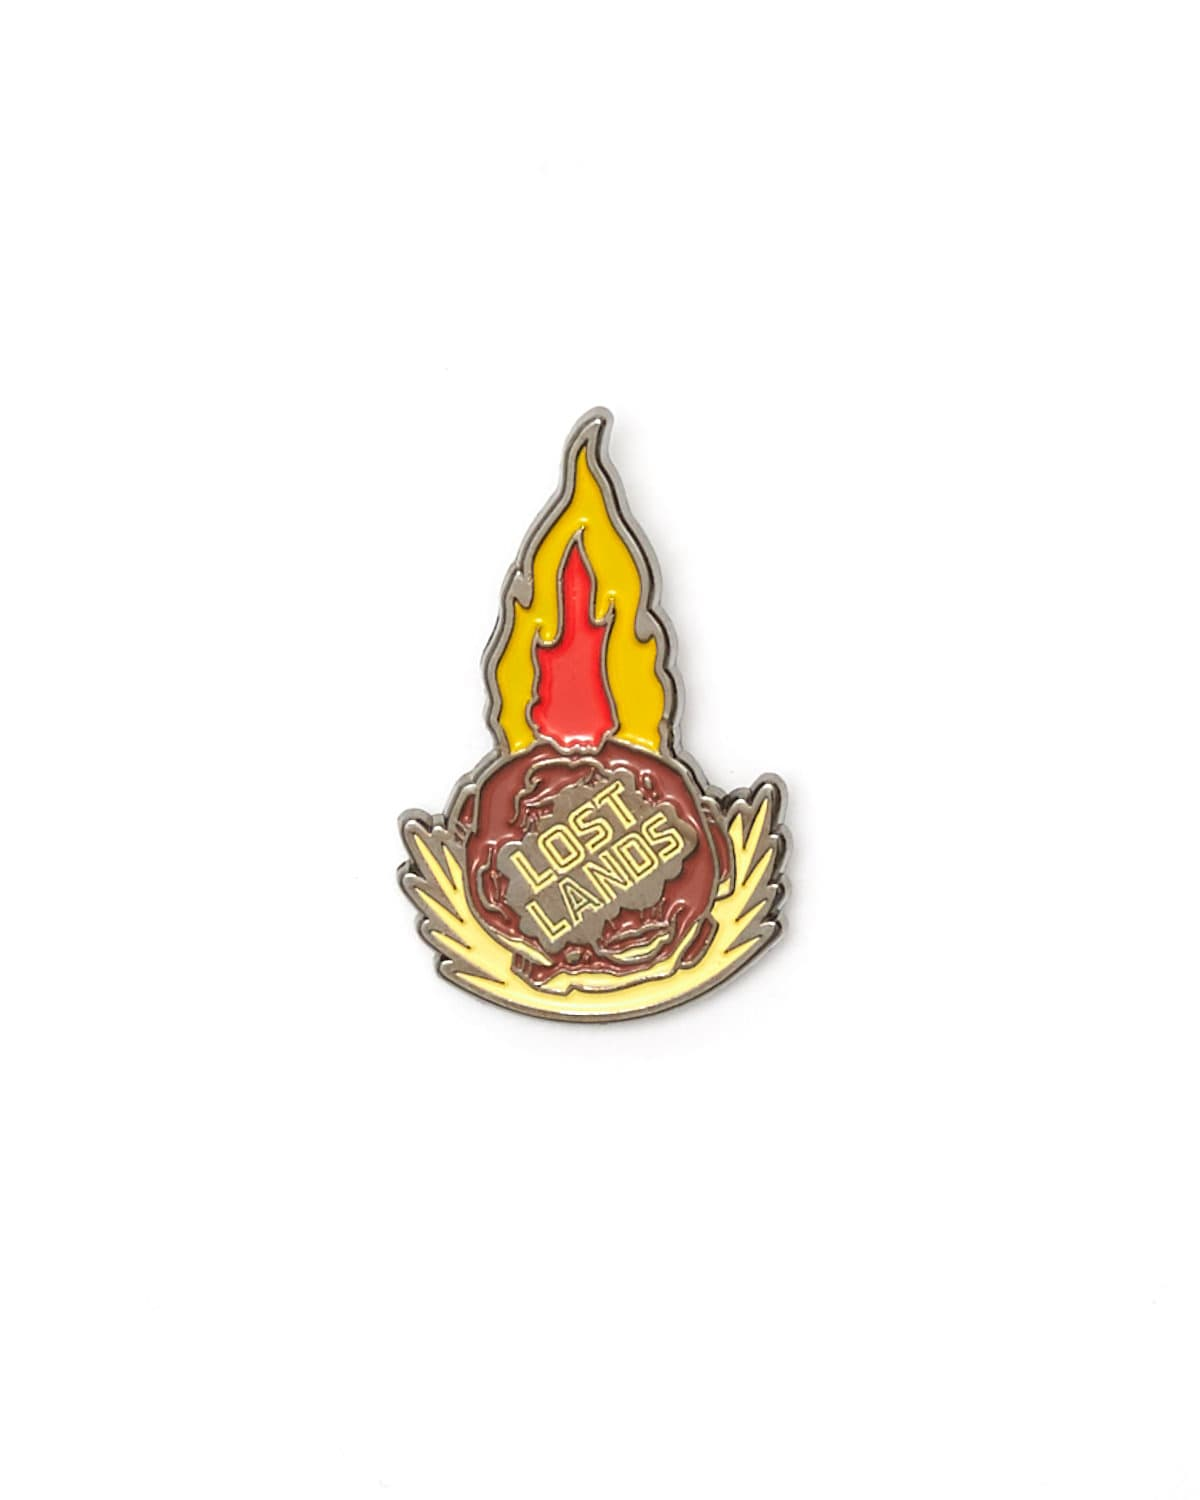 'Meteor' Enamel Pin - Red/Yellow